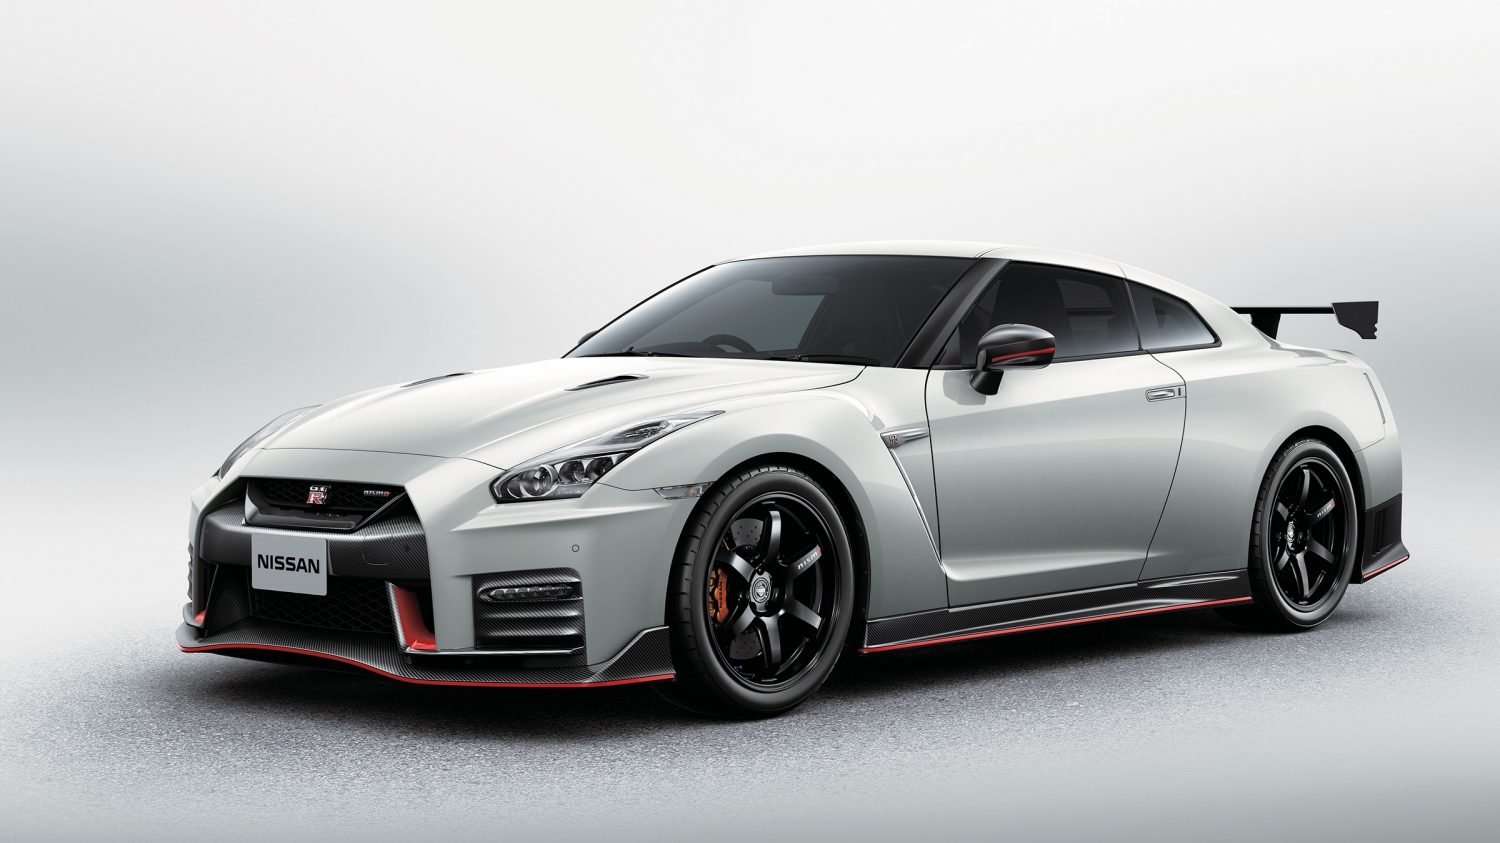 ares nissan gt r - photo #2